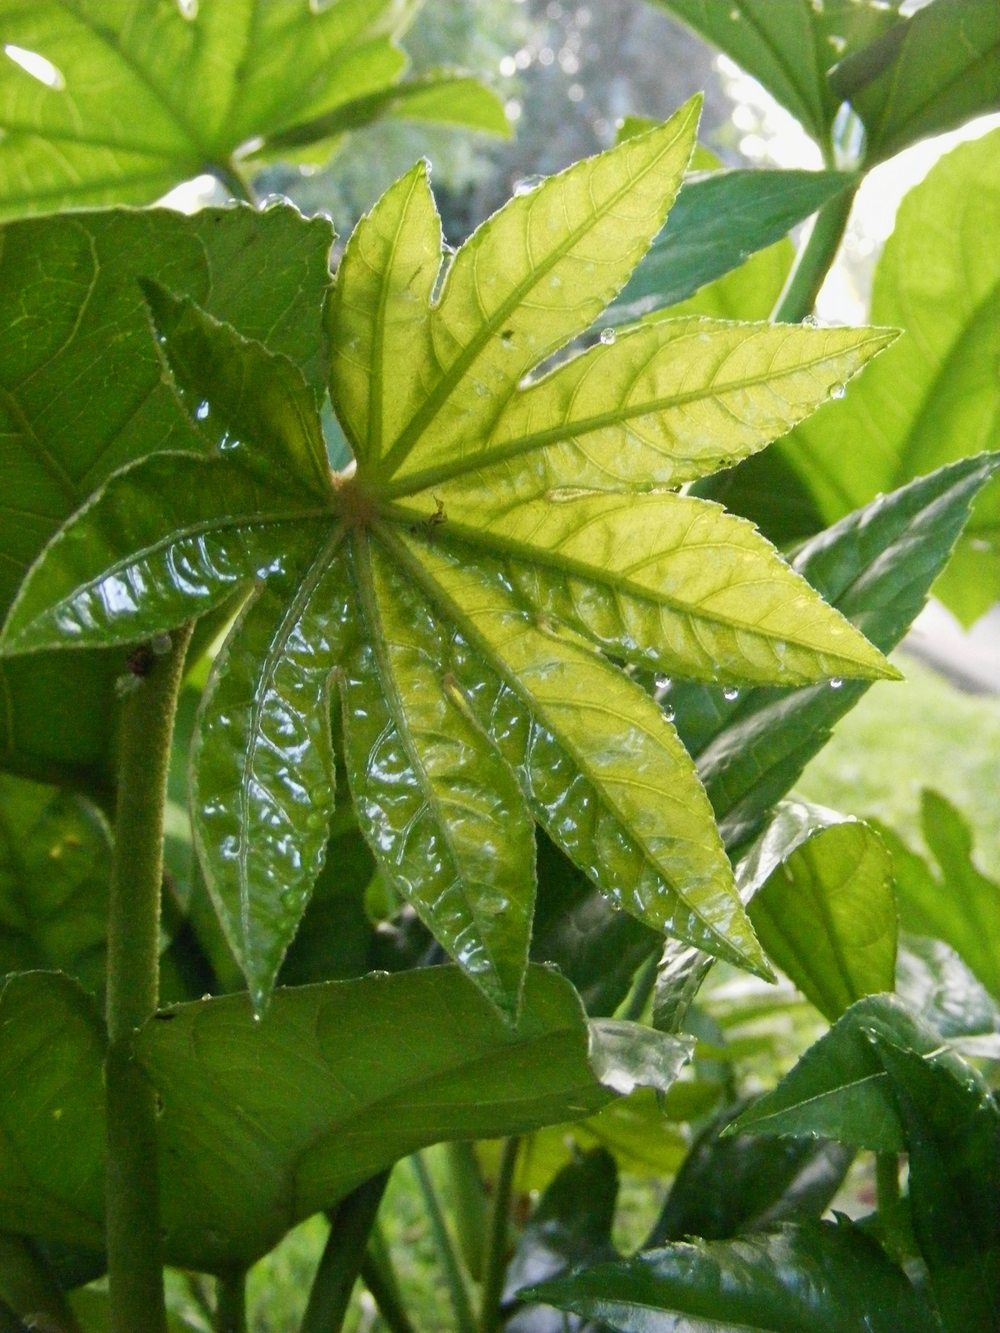 Fatsia leaf with dew